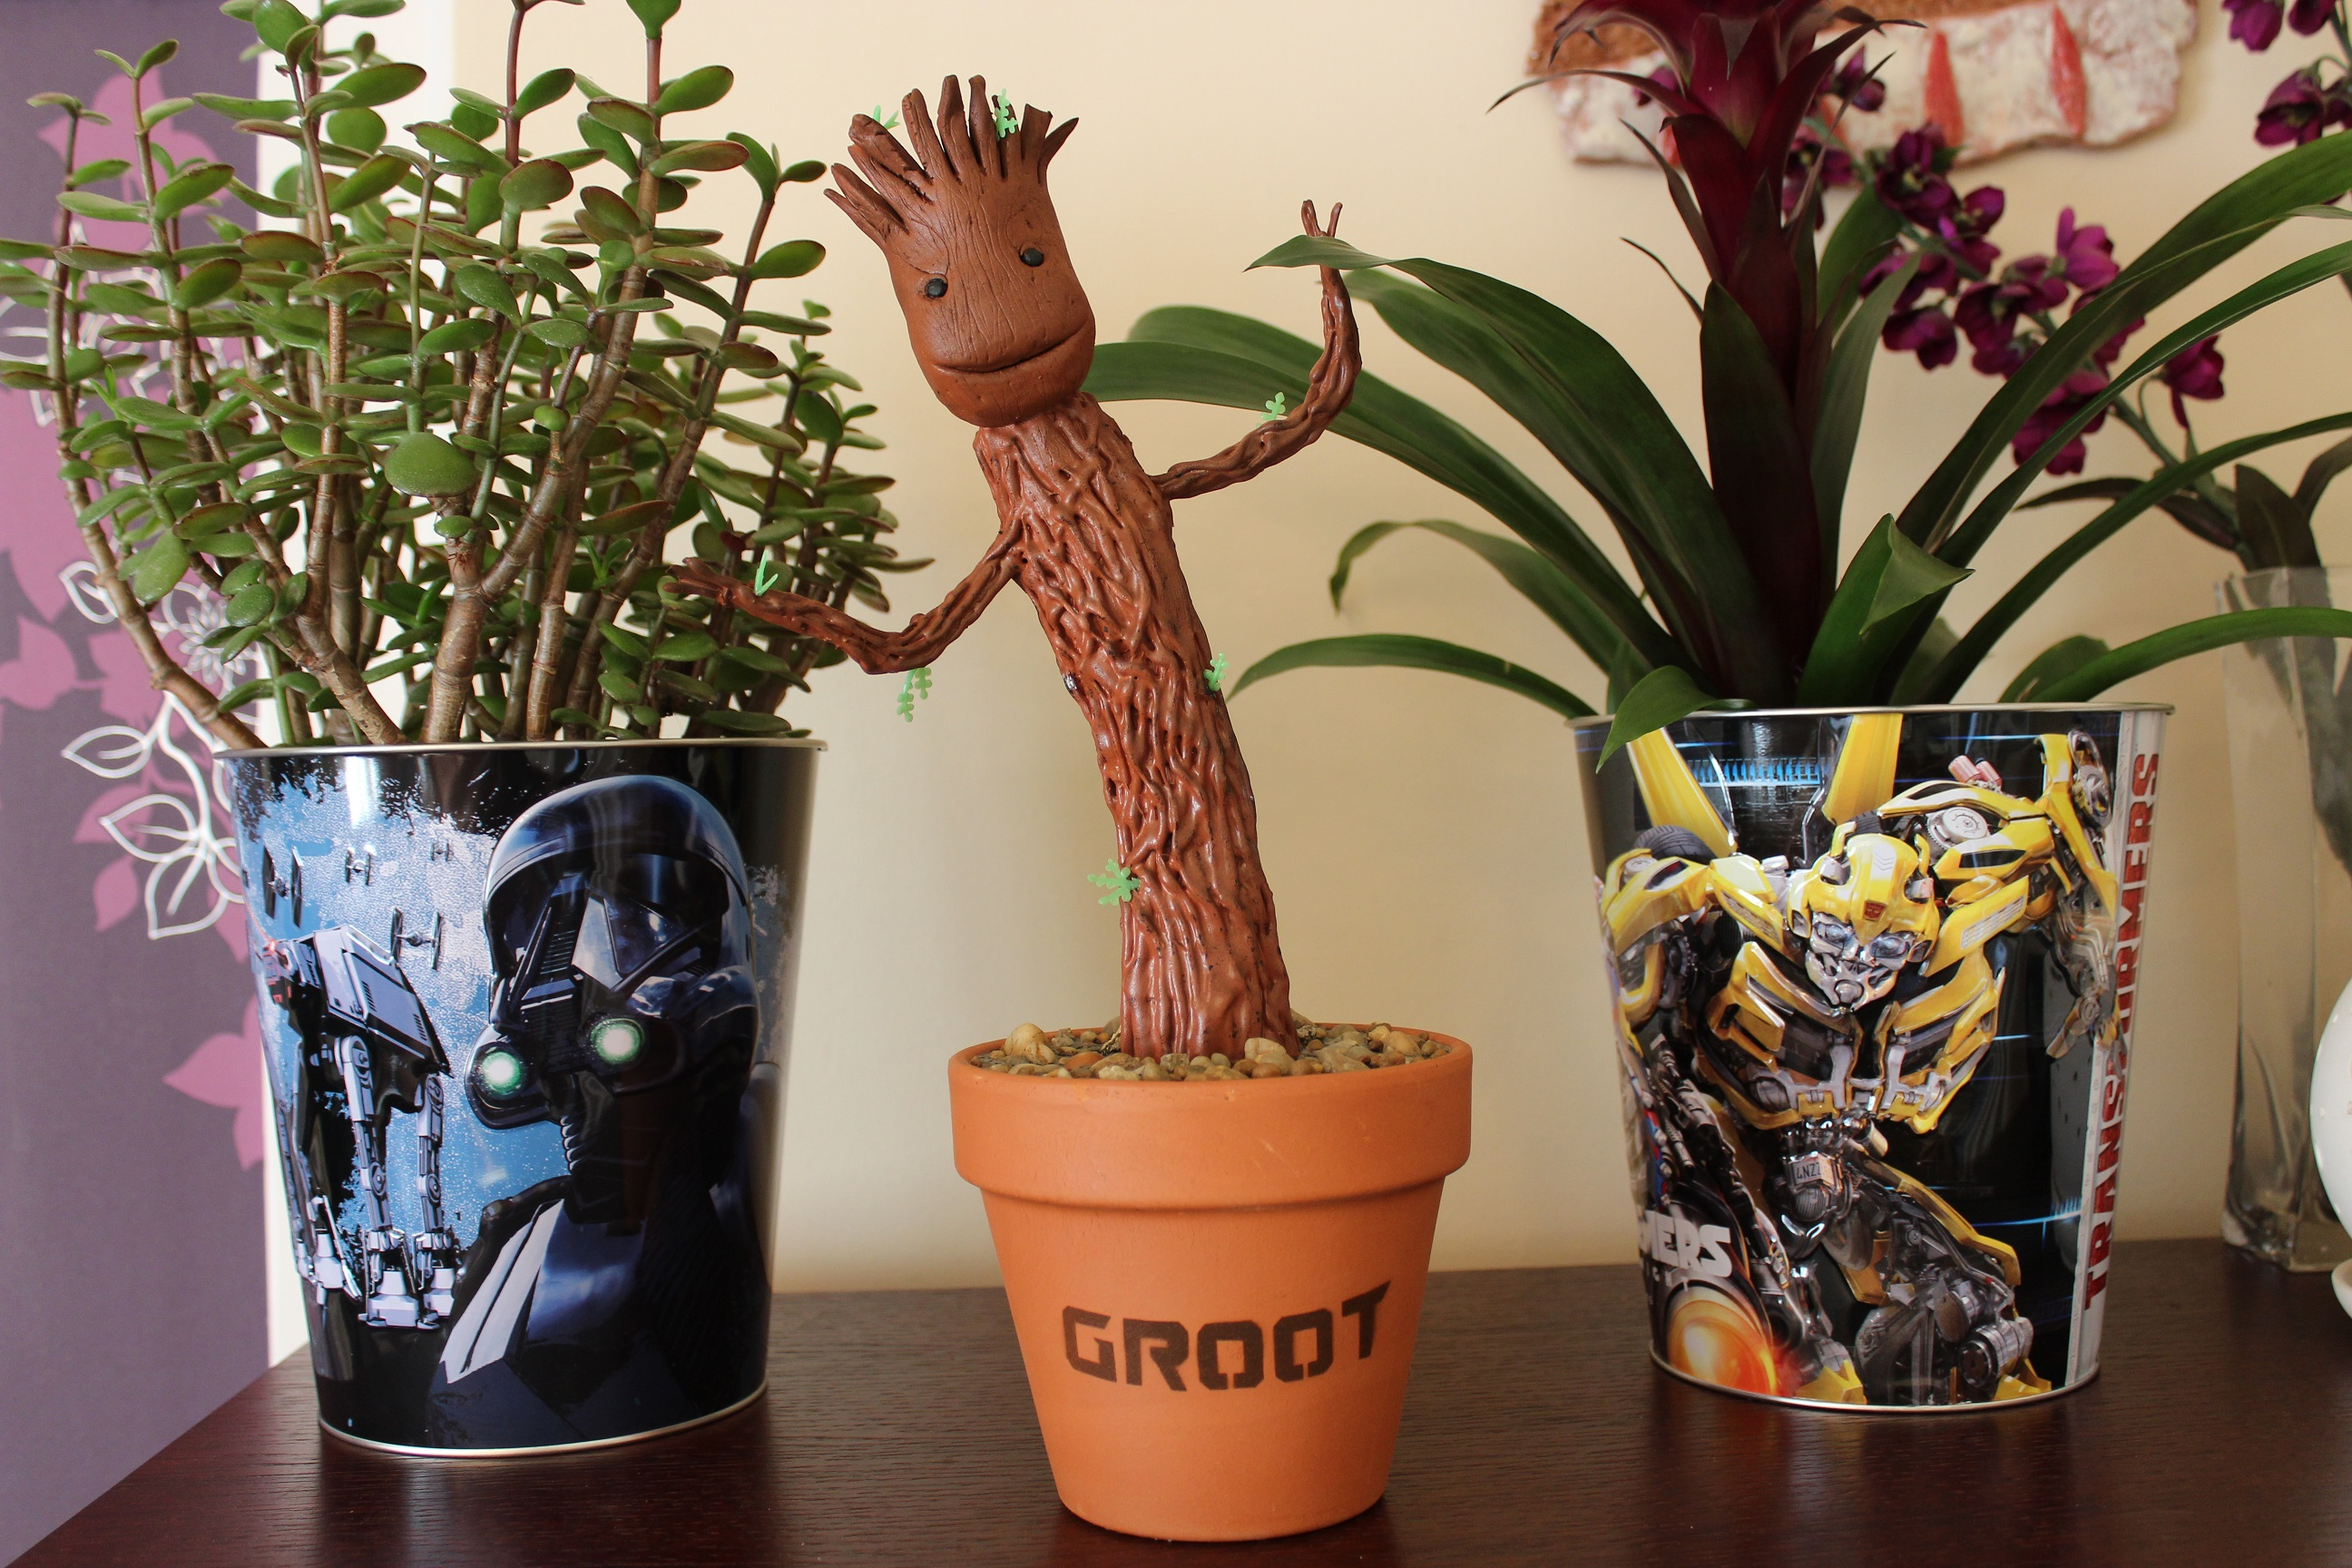 szmk_diy_csinald_magad_groot_guardians_galaxy_galaxis_orzoi_marvel_37.JPG